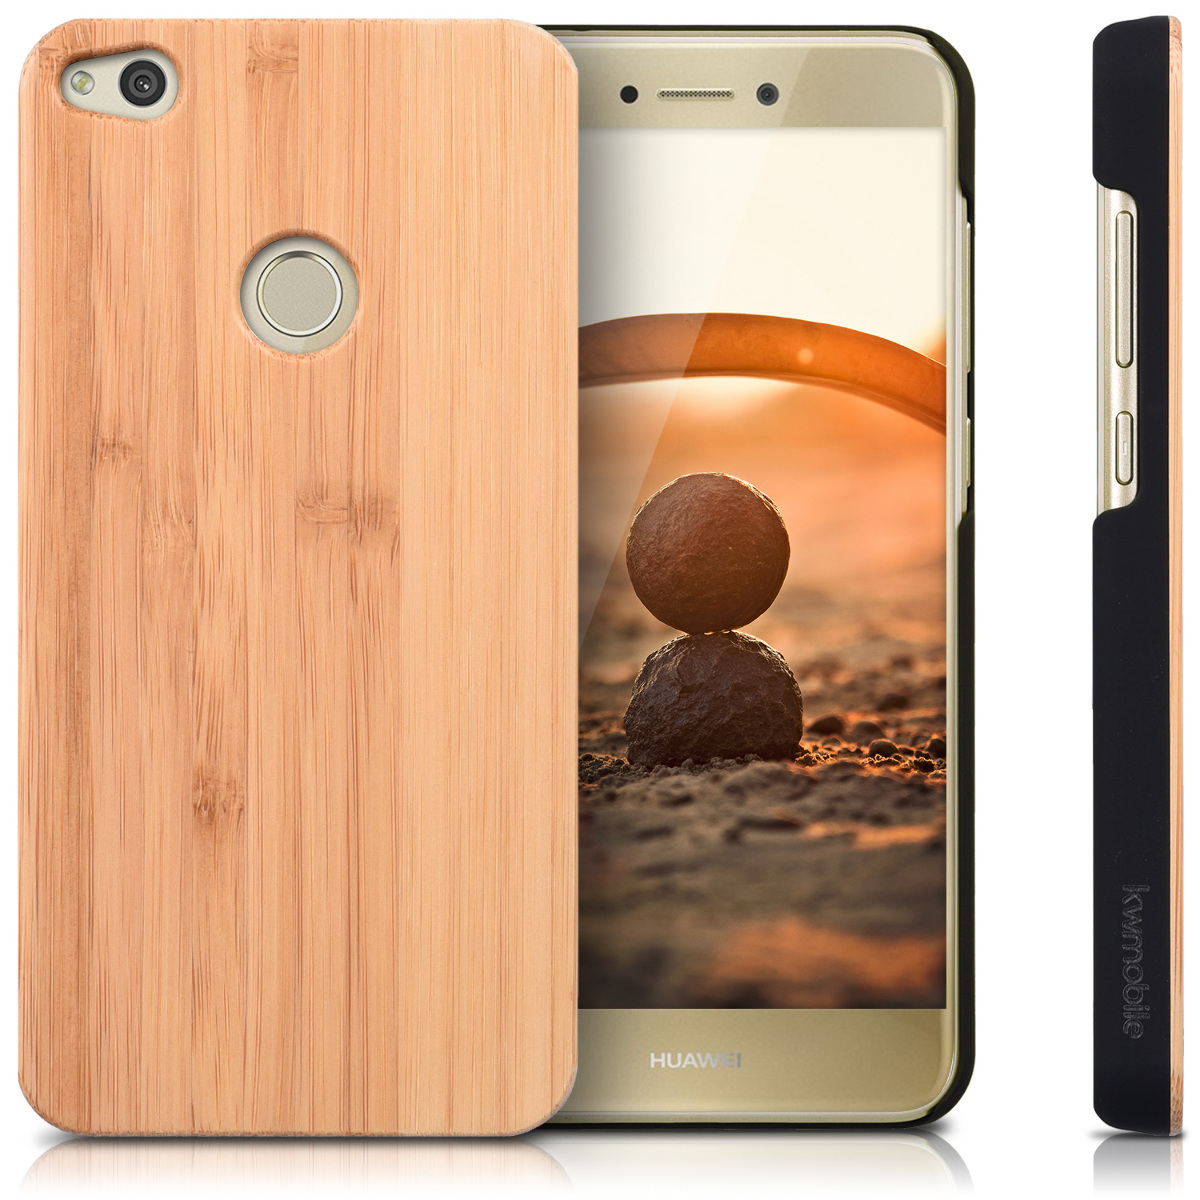 wooden case for huawei p8 lite 2017 protection cover mobile case glitter ebay. Black Bedroom Furniture Sets. Home Design Ideas